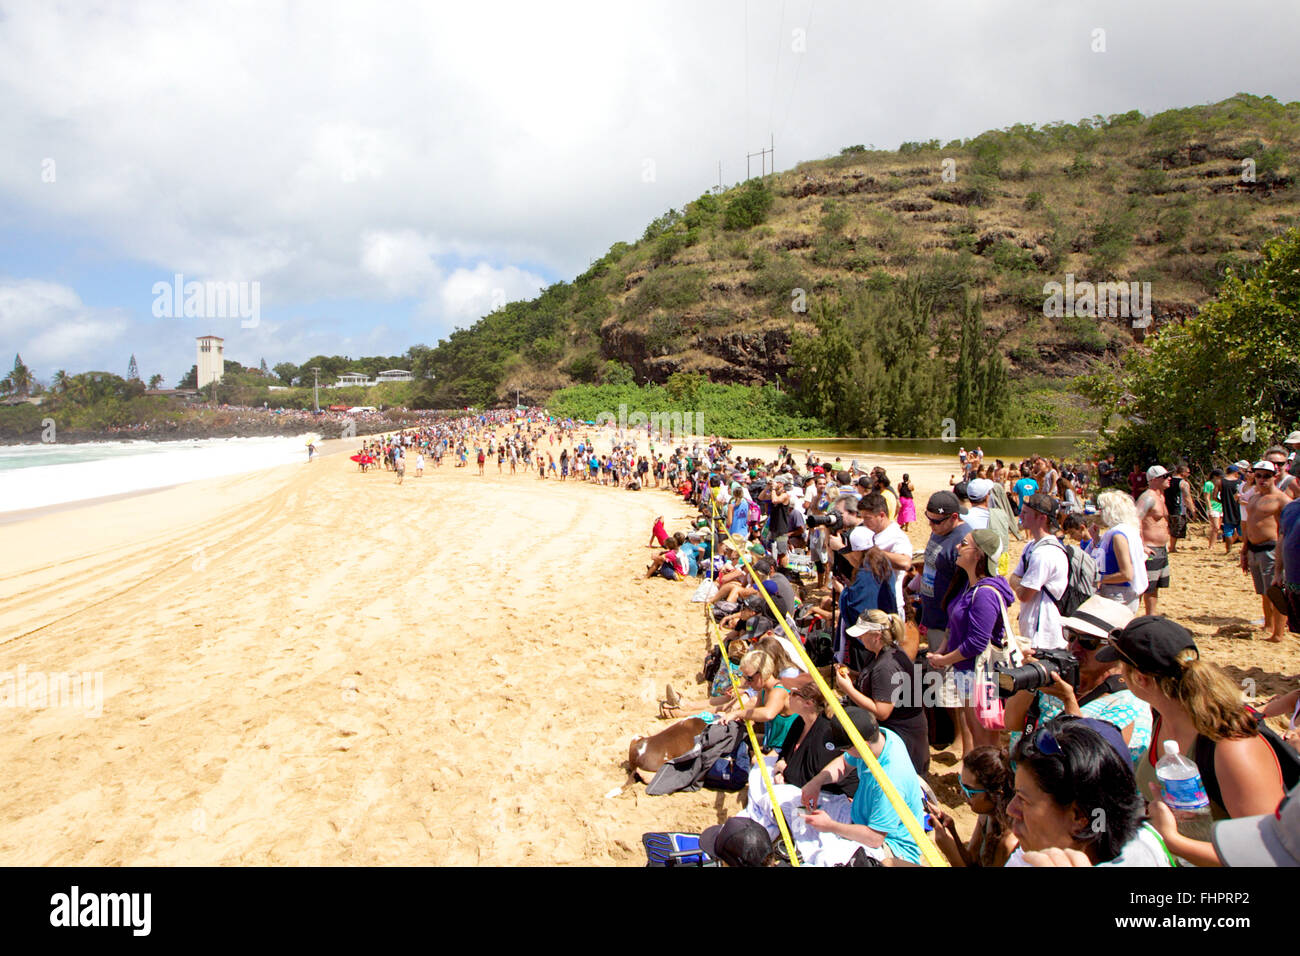 Haleiwa, Hawaii, USA. 25th February, 2016. February 25, 2016 - The crowd was estimated at 15,000 on the beach during Stock Photo